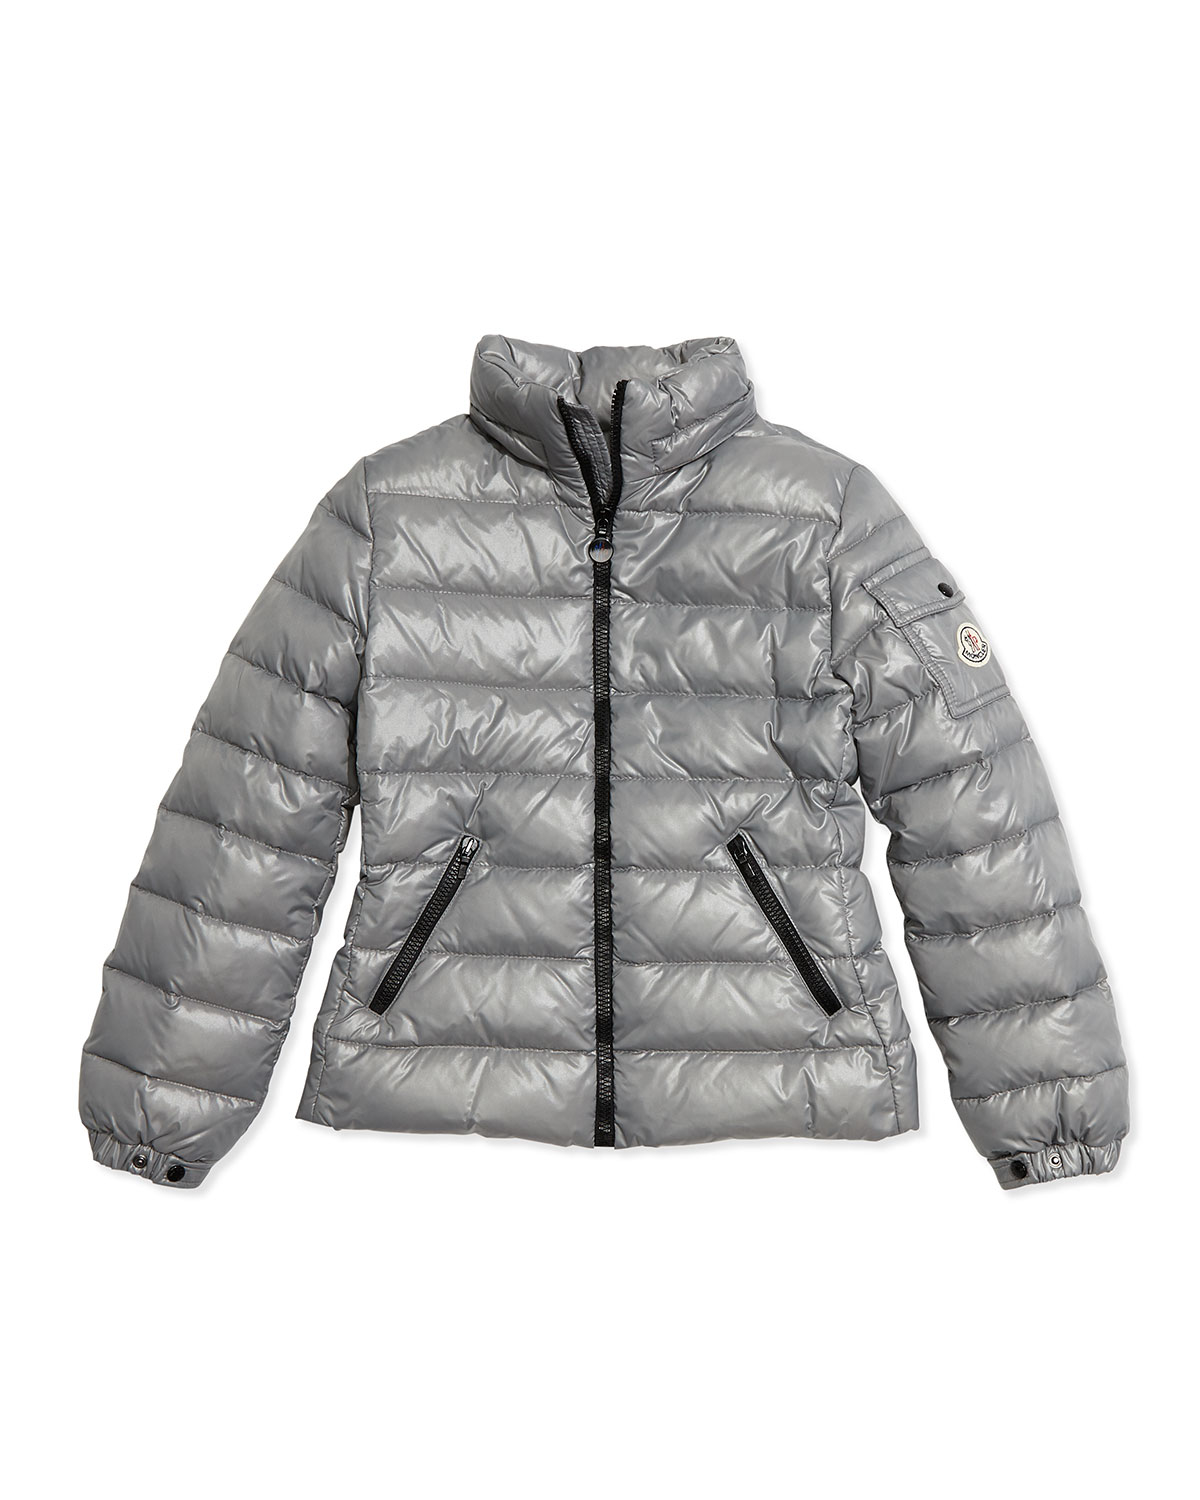 8cb7e455185c Lyst - Moncler Bady Quilted Jacket in Gray